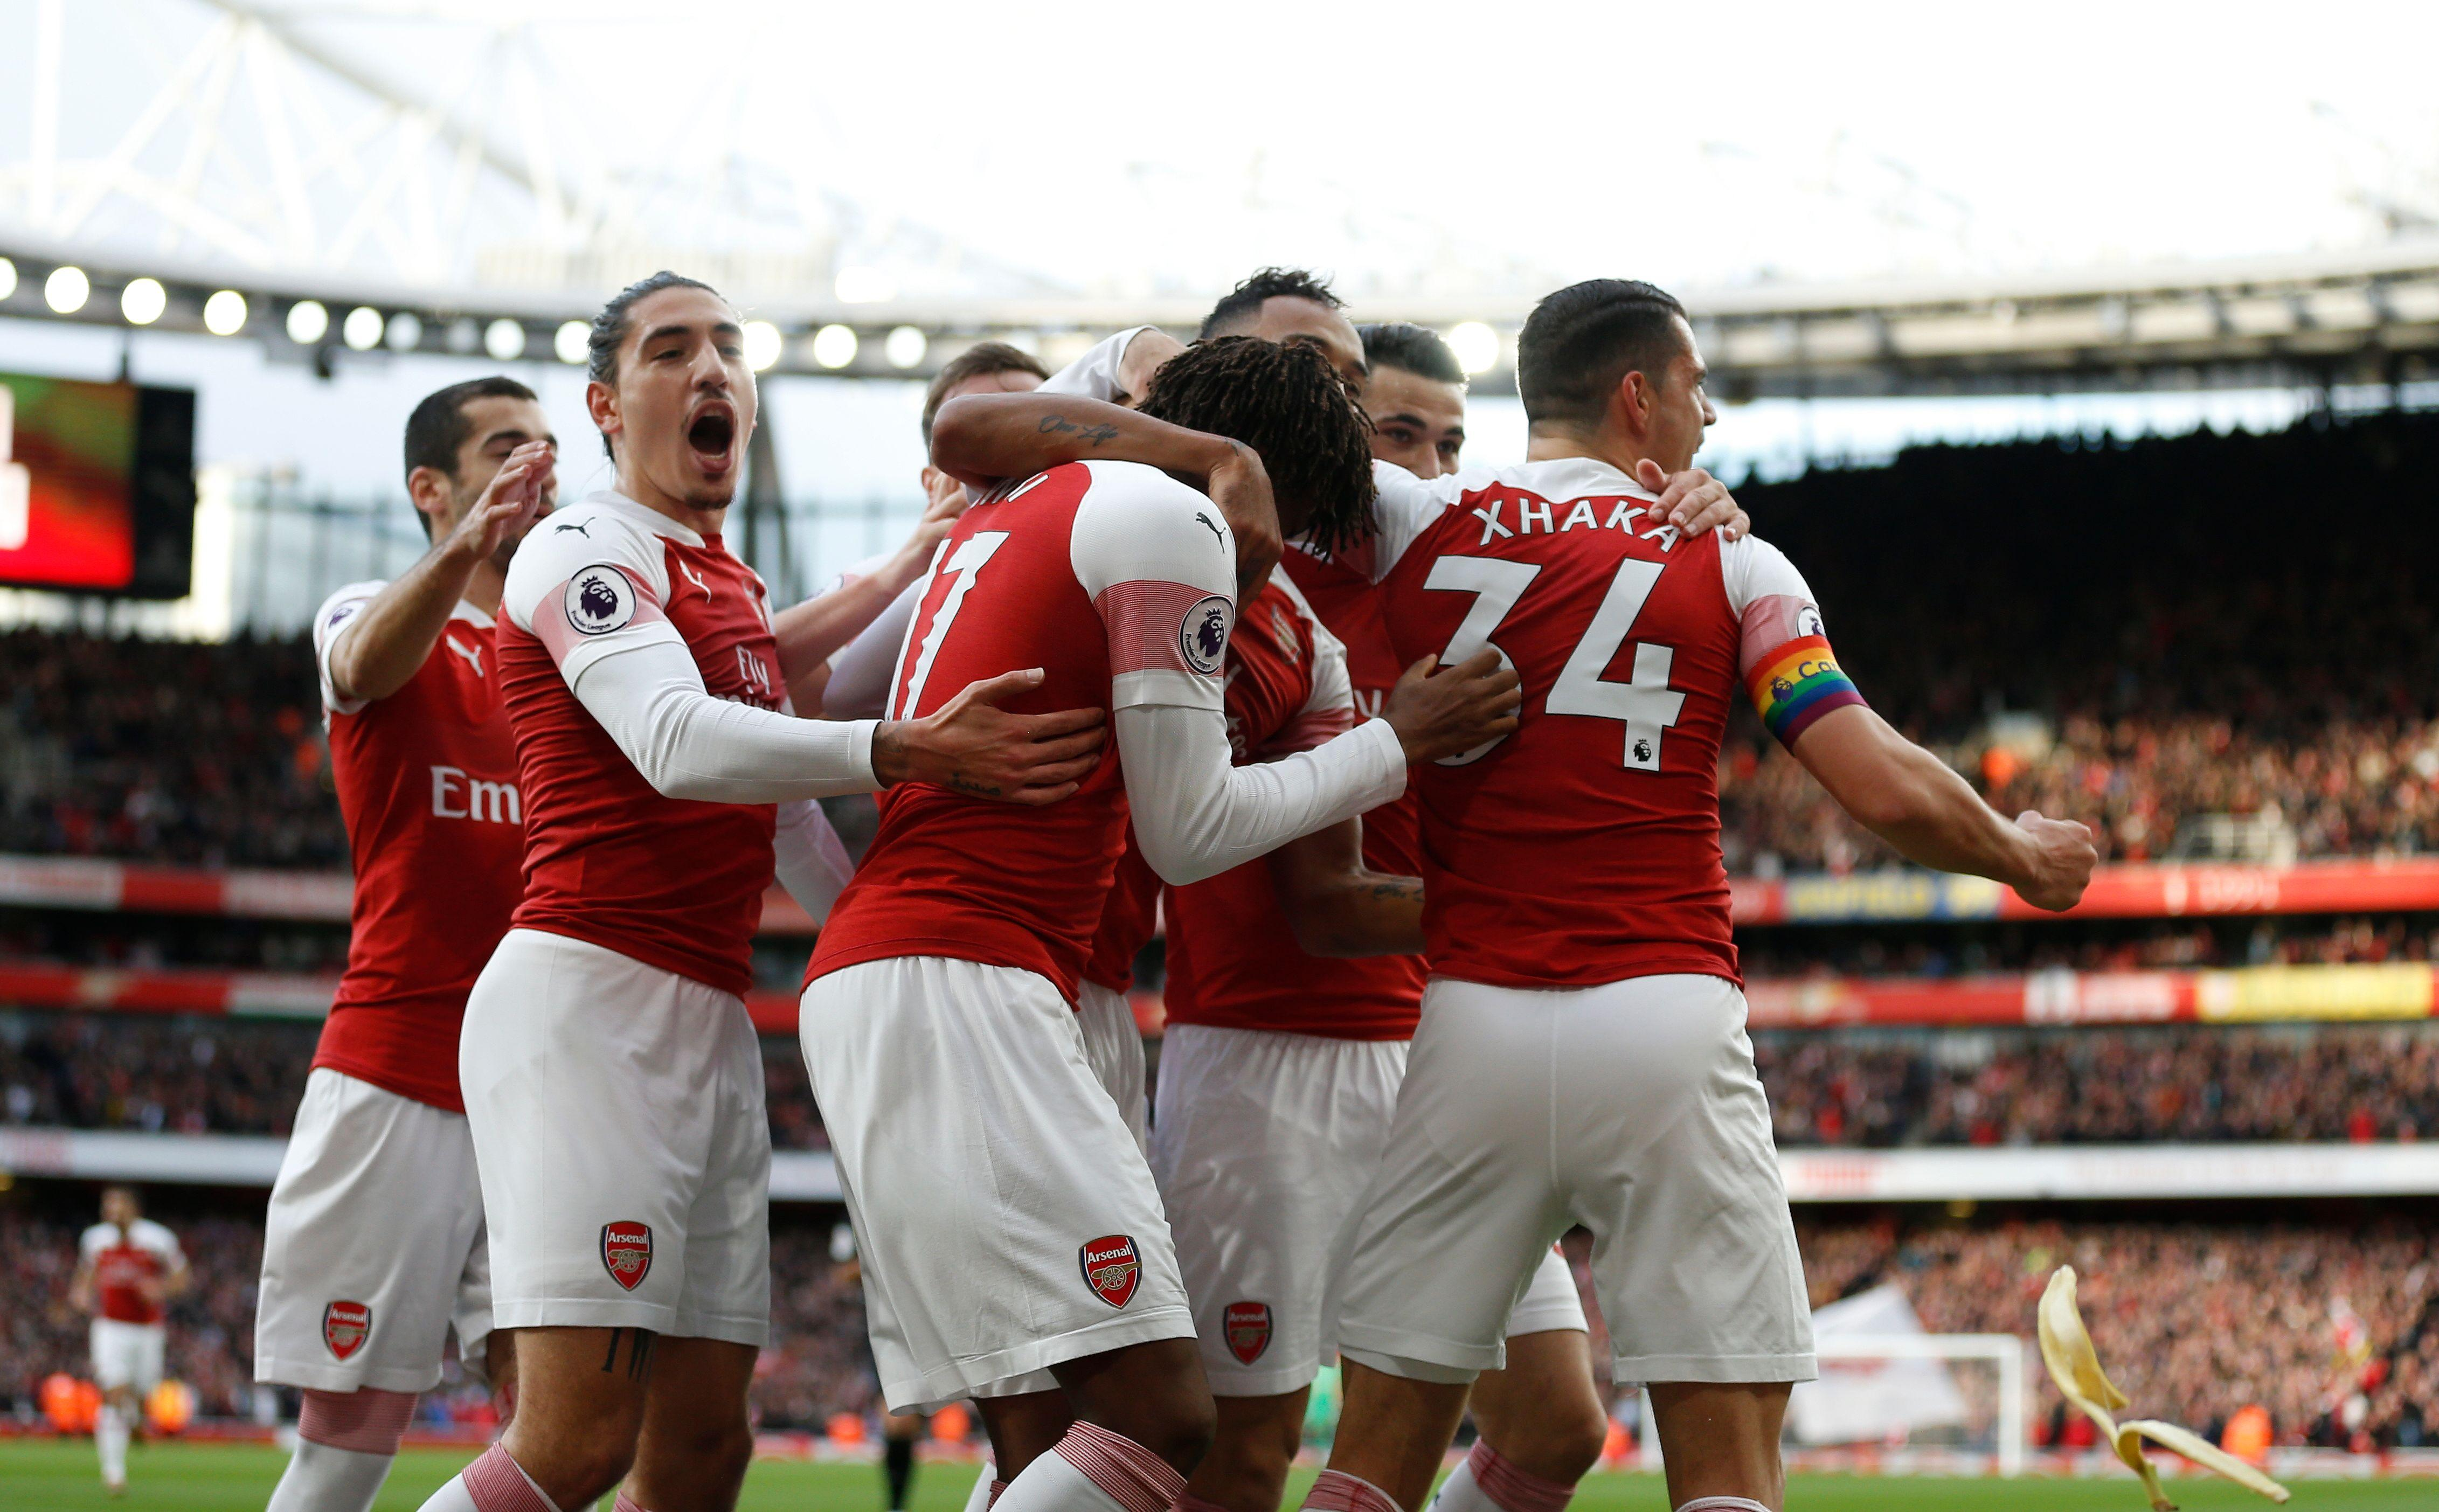 Arsenal have not lost in 12 games